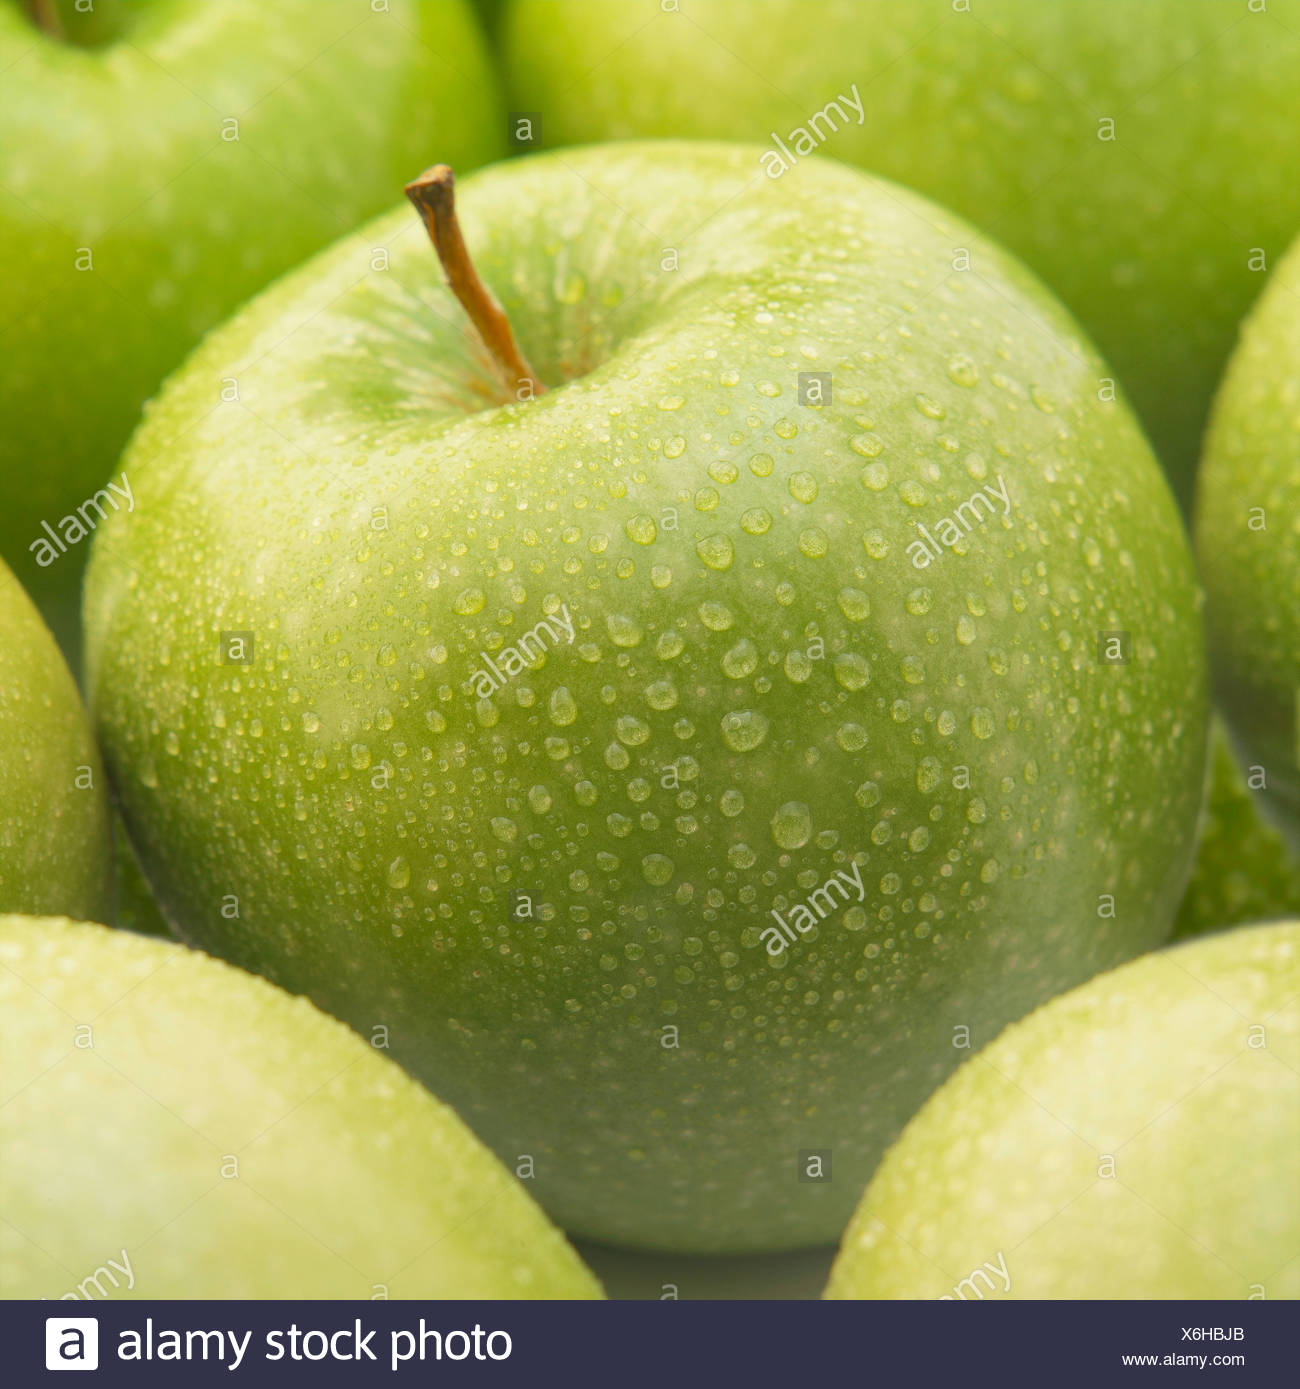 Granny Smith apples with droplets - Stock Image